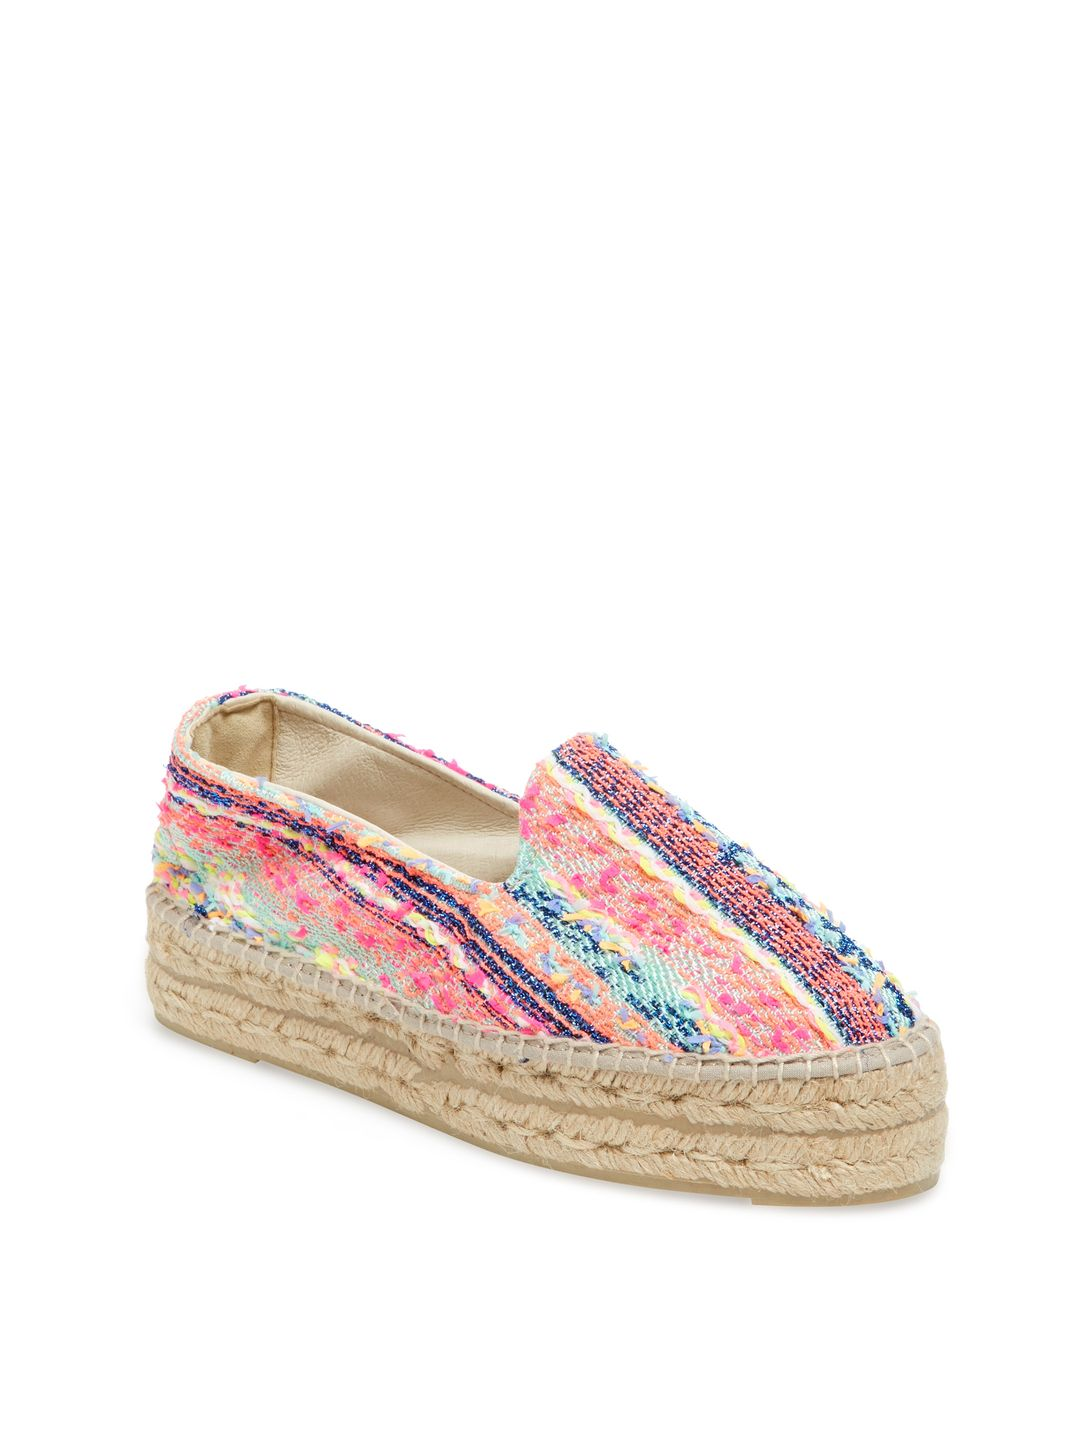 Manebi Ibiza Tweed Espadrilles w/ Tags clearance good selling buy cheap low price fee shipping sale professional low price fee shipping cheap online cheap sale buy tazN9